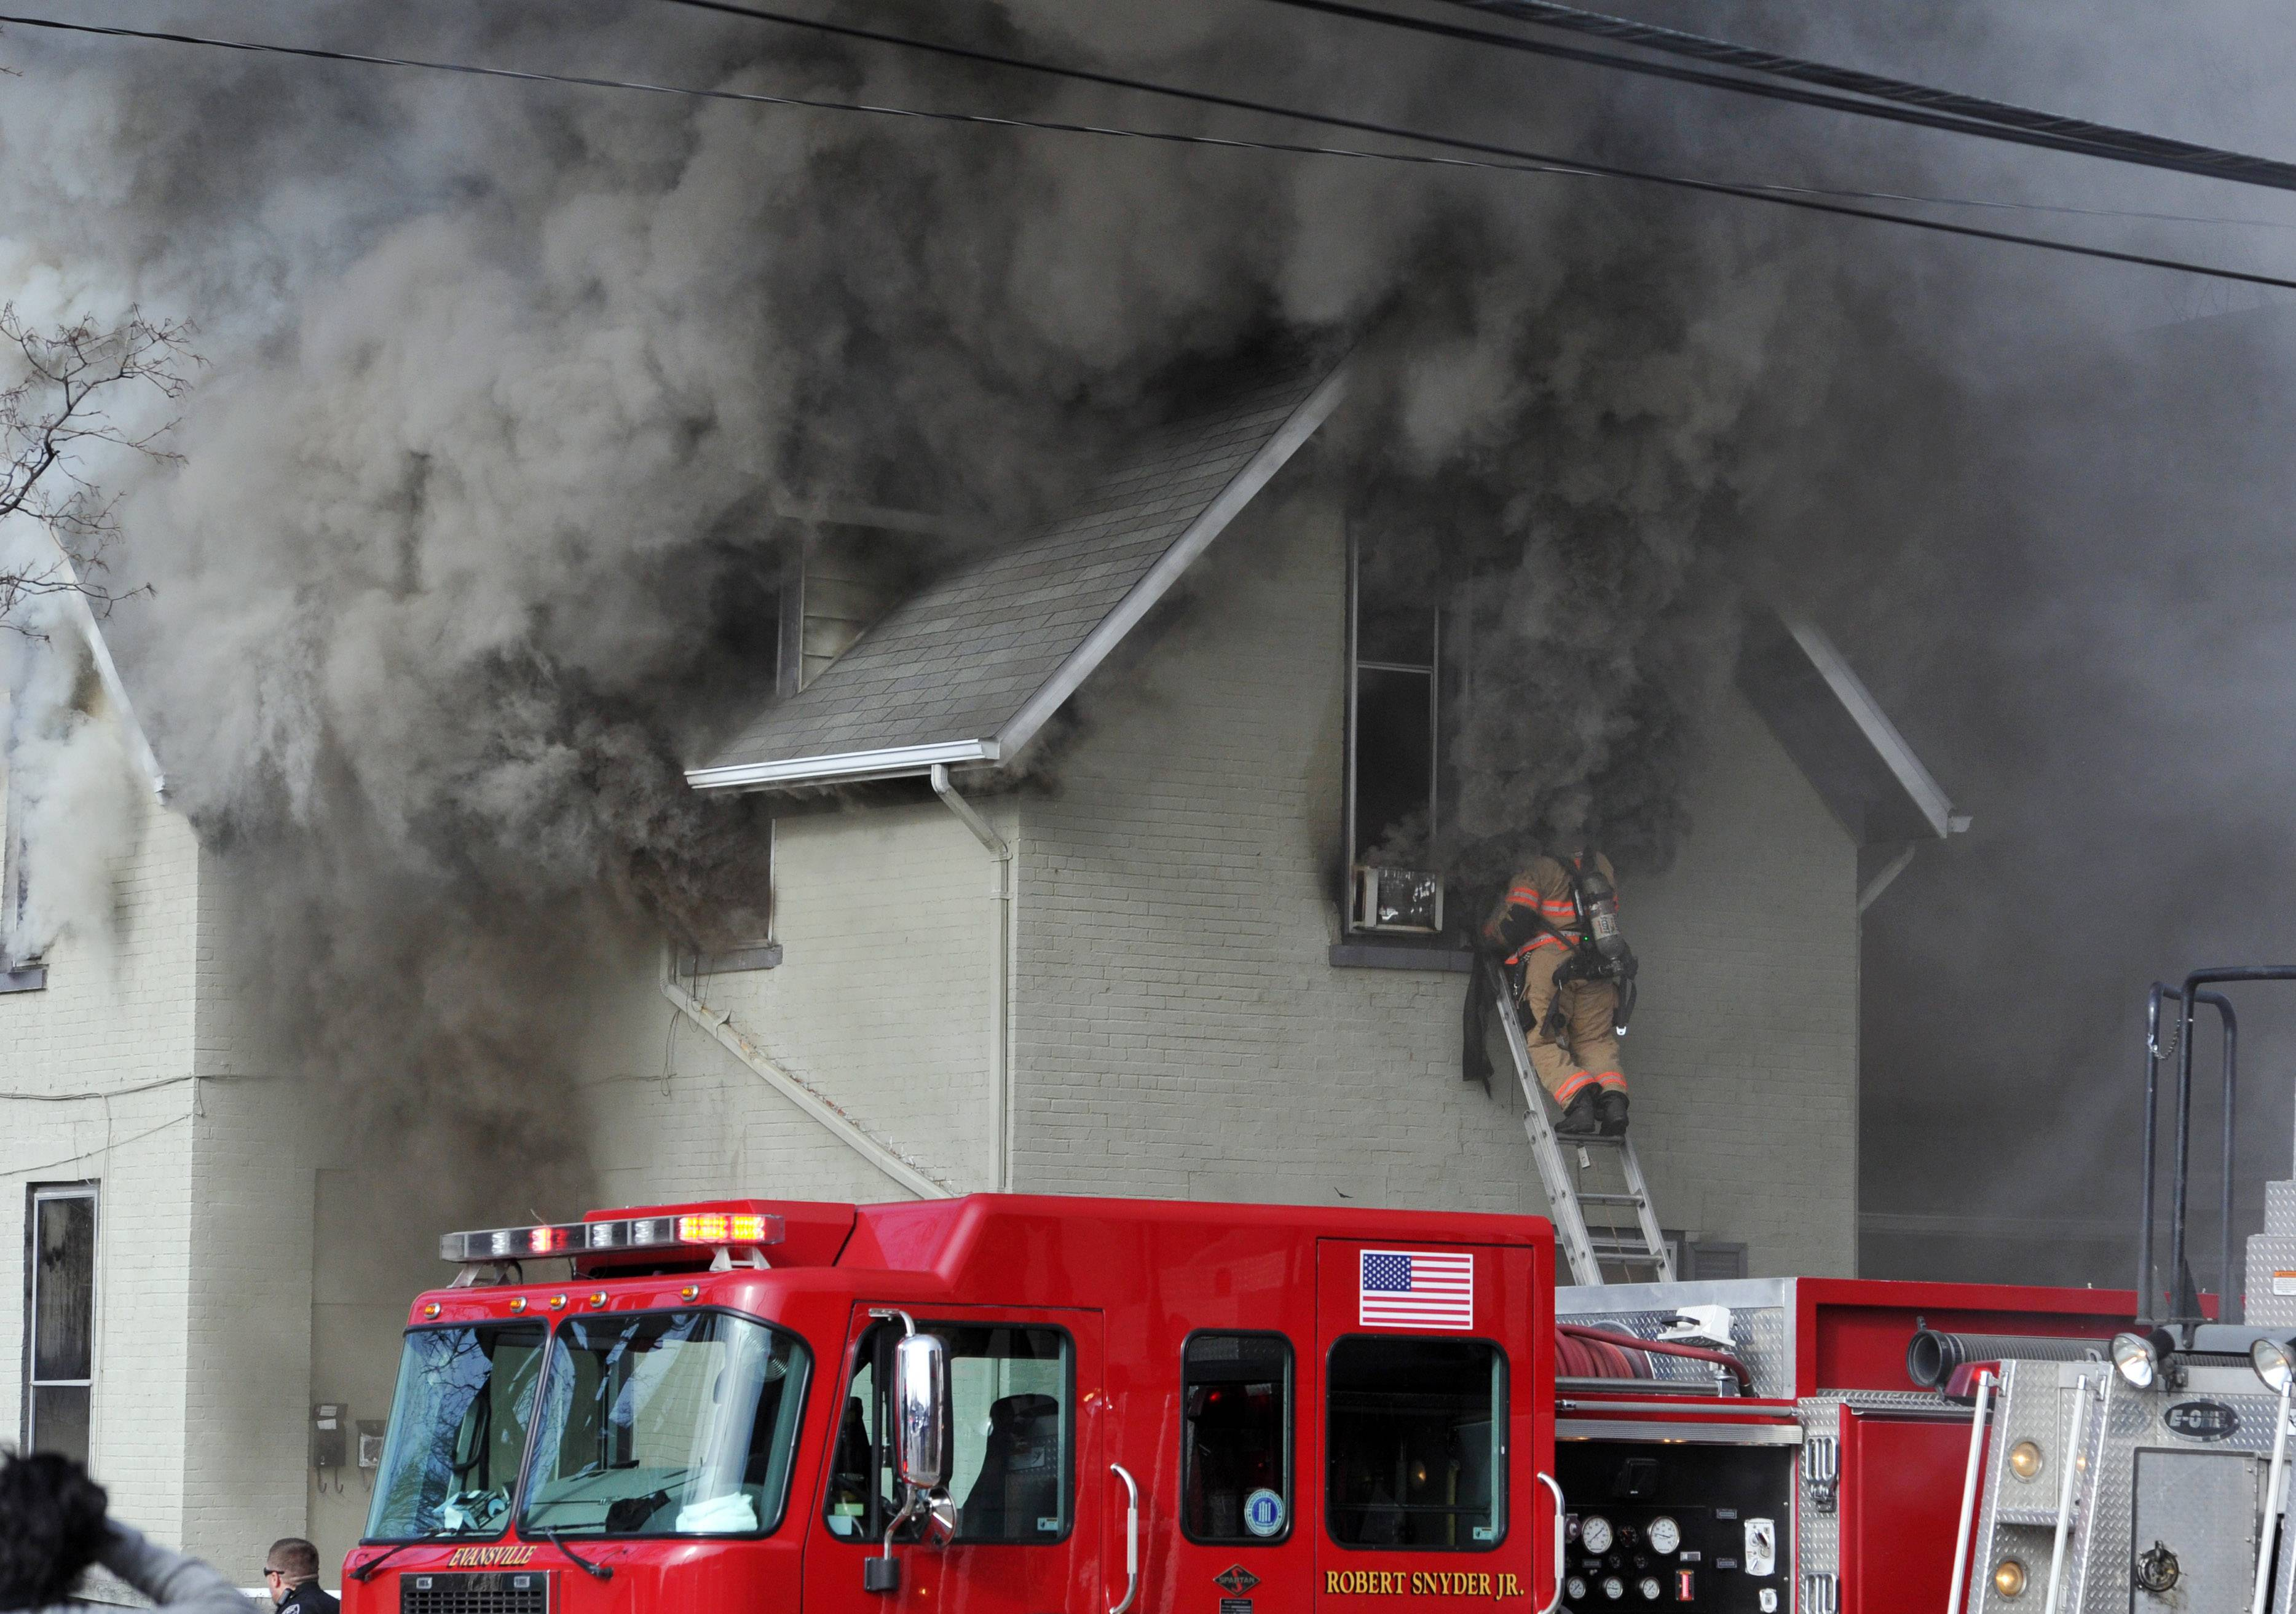 An Evansville firefighter uses a ladder to try to quickly access the second floor of a burning apartment on W. Franklin Street near the N. Baker Avenue intersection in Evansville, Ind. Three people died and eight others were injured in the fire, which authorities are investigating as a possible arson.